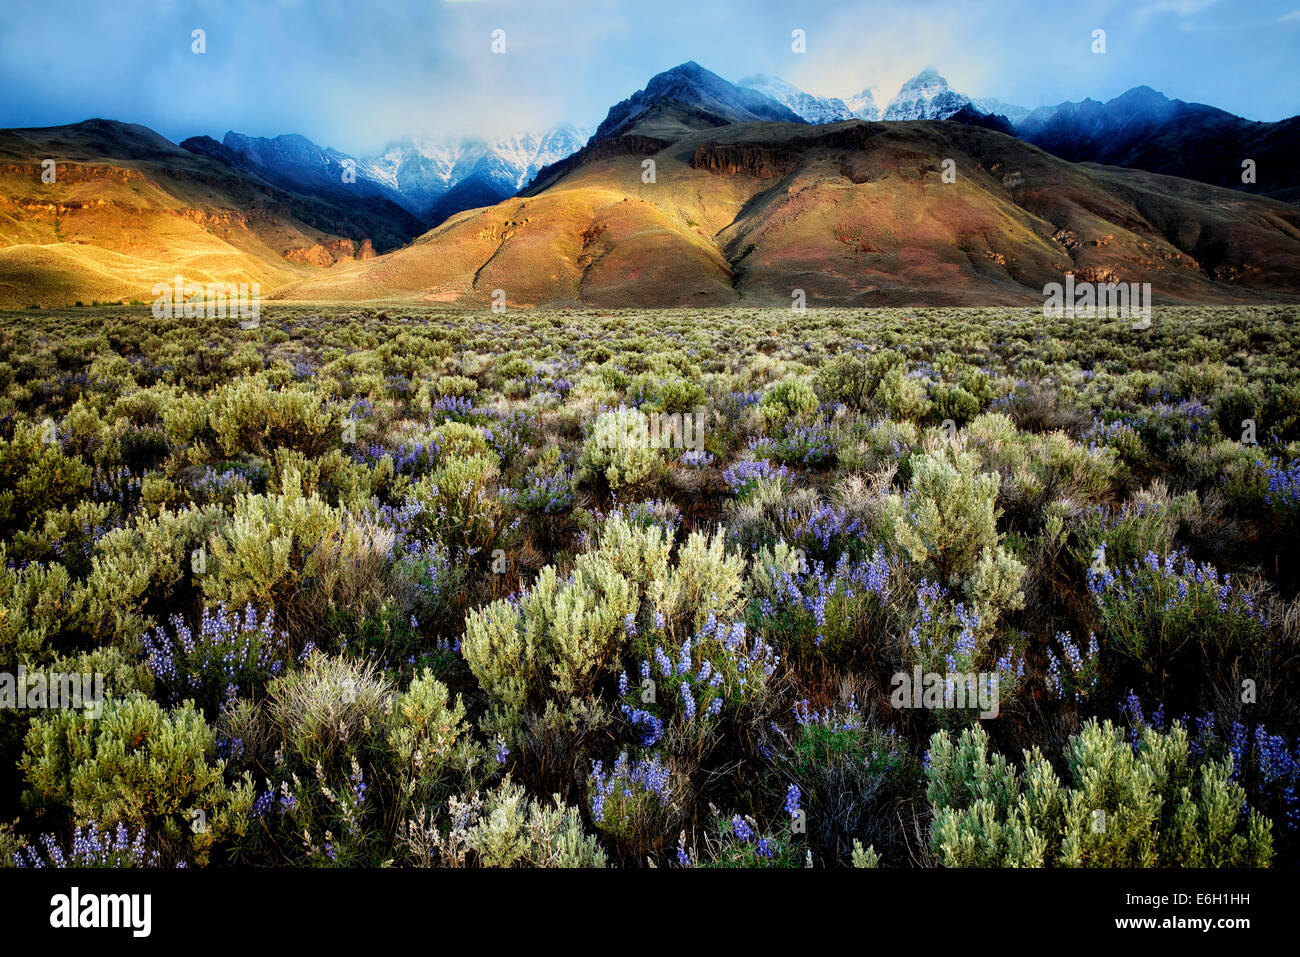 Sun peaking through on Steens Mountain with lupine wildflowers. Oregon - Stock Image